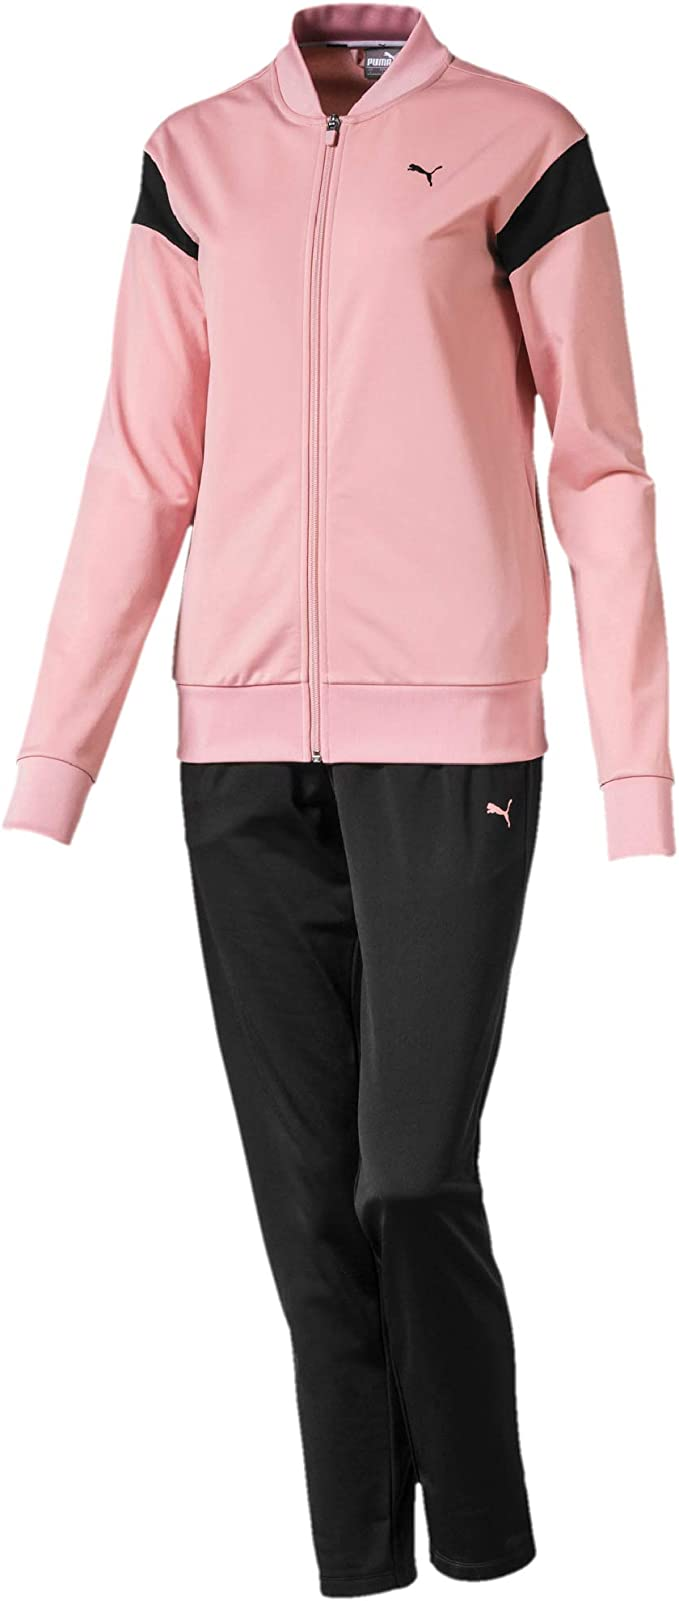 PUMA Classic Tricot Suit, Op Chándal, Mujer: Amazon.es: Ropa y ...